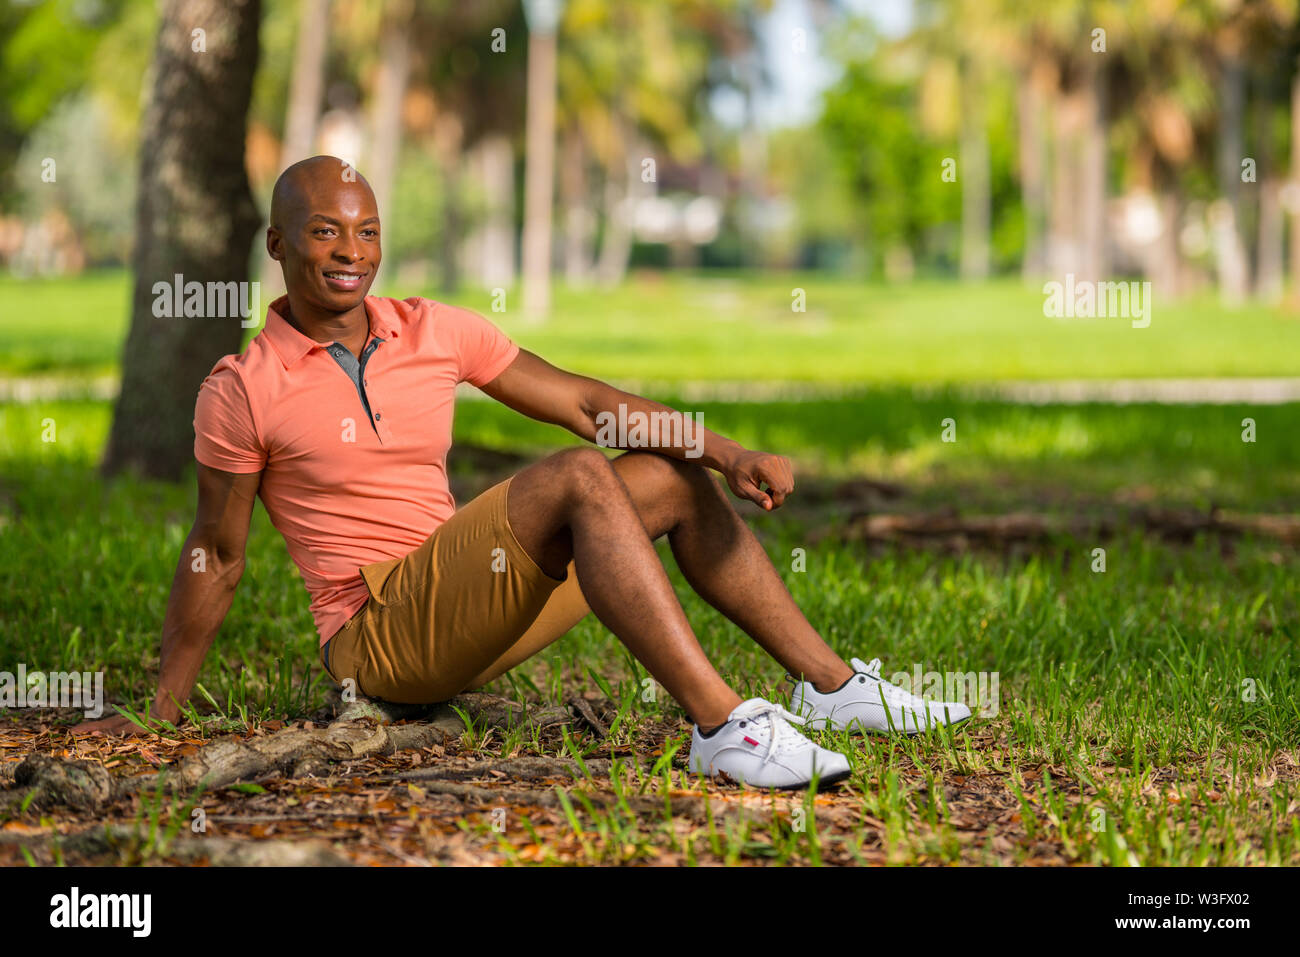 Photo of a young black man sitting in the park. Person wearing casual pink polo shirt and shorts - Stock Image